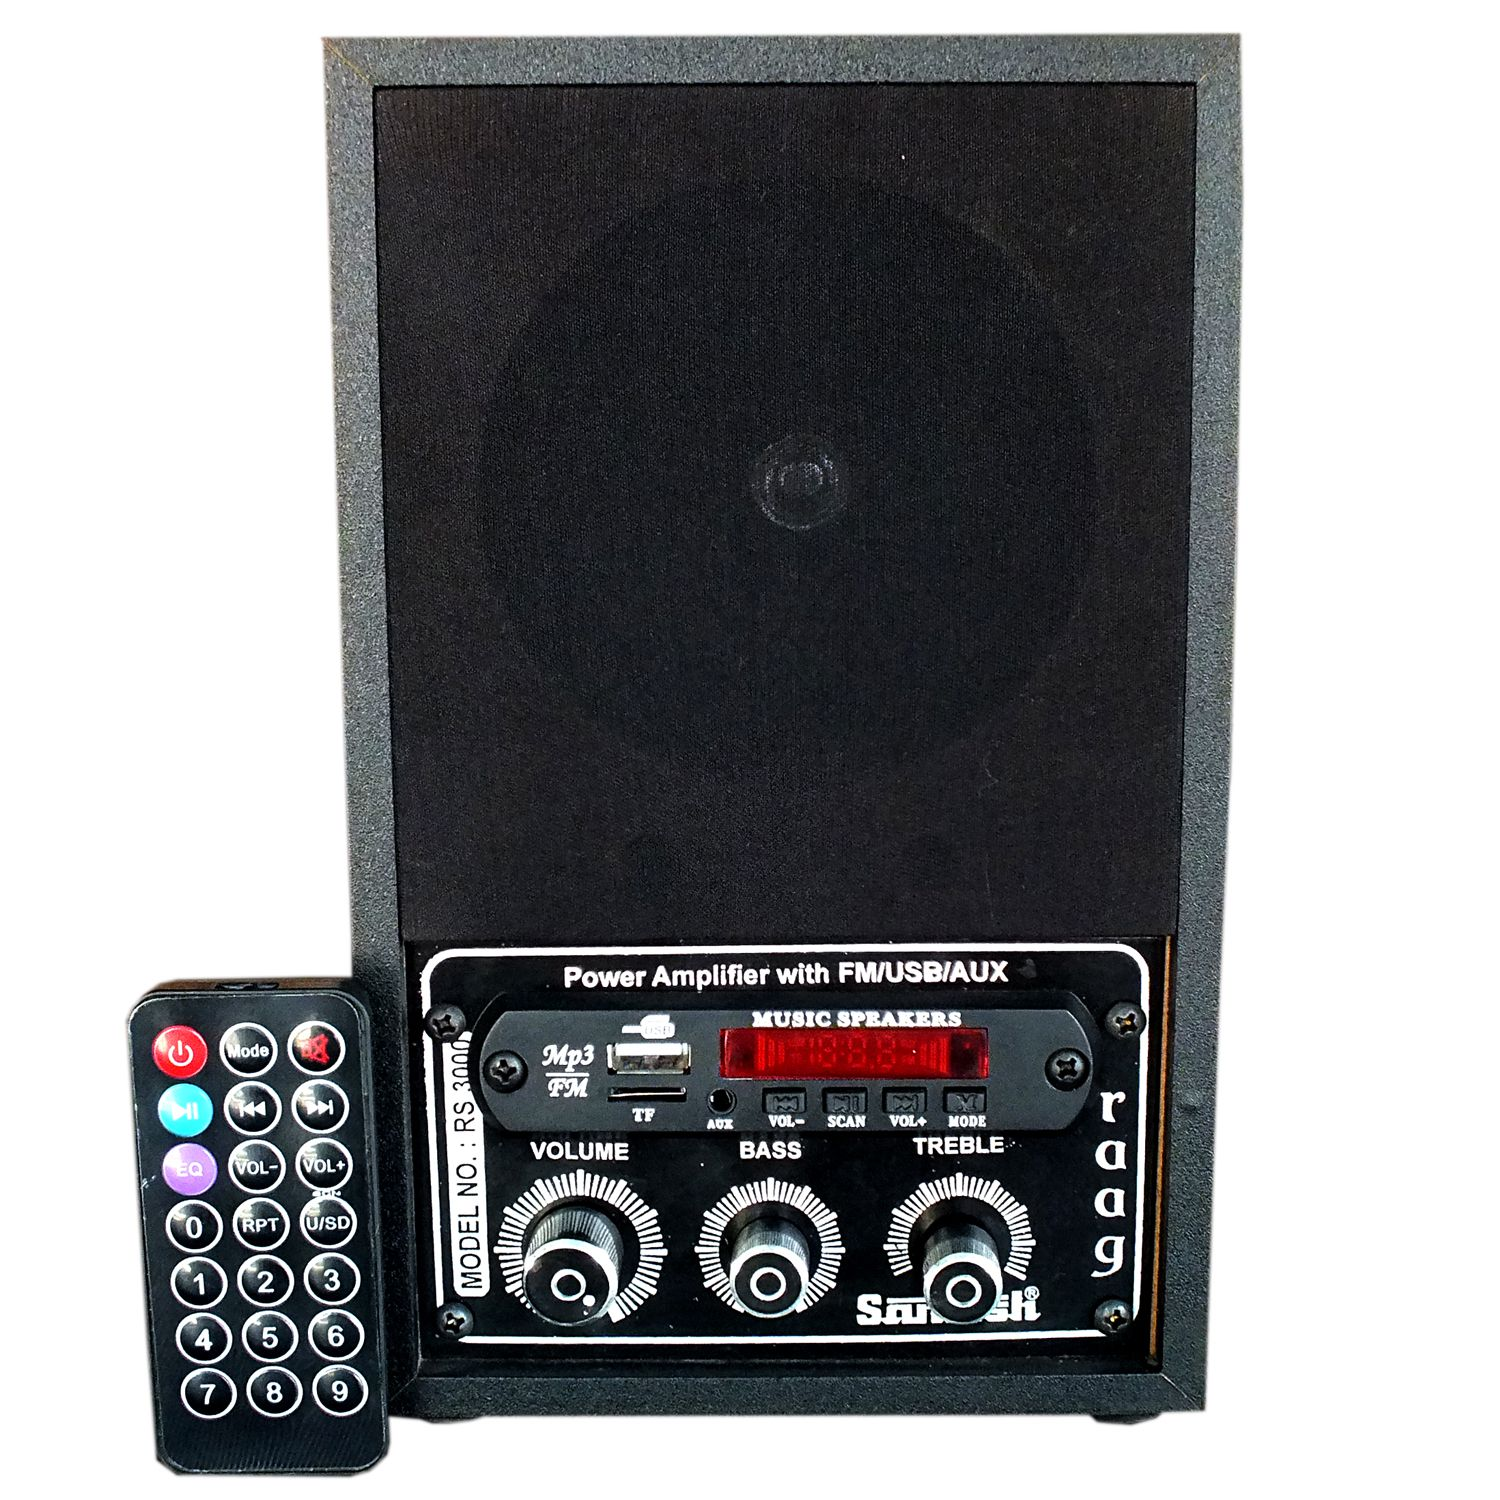 7c22a10050b Buy Santosh Raag- Bluetooth Enabled FM Radio Players Online at Best Price  in India - Snapdeal